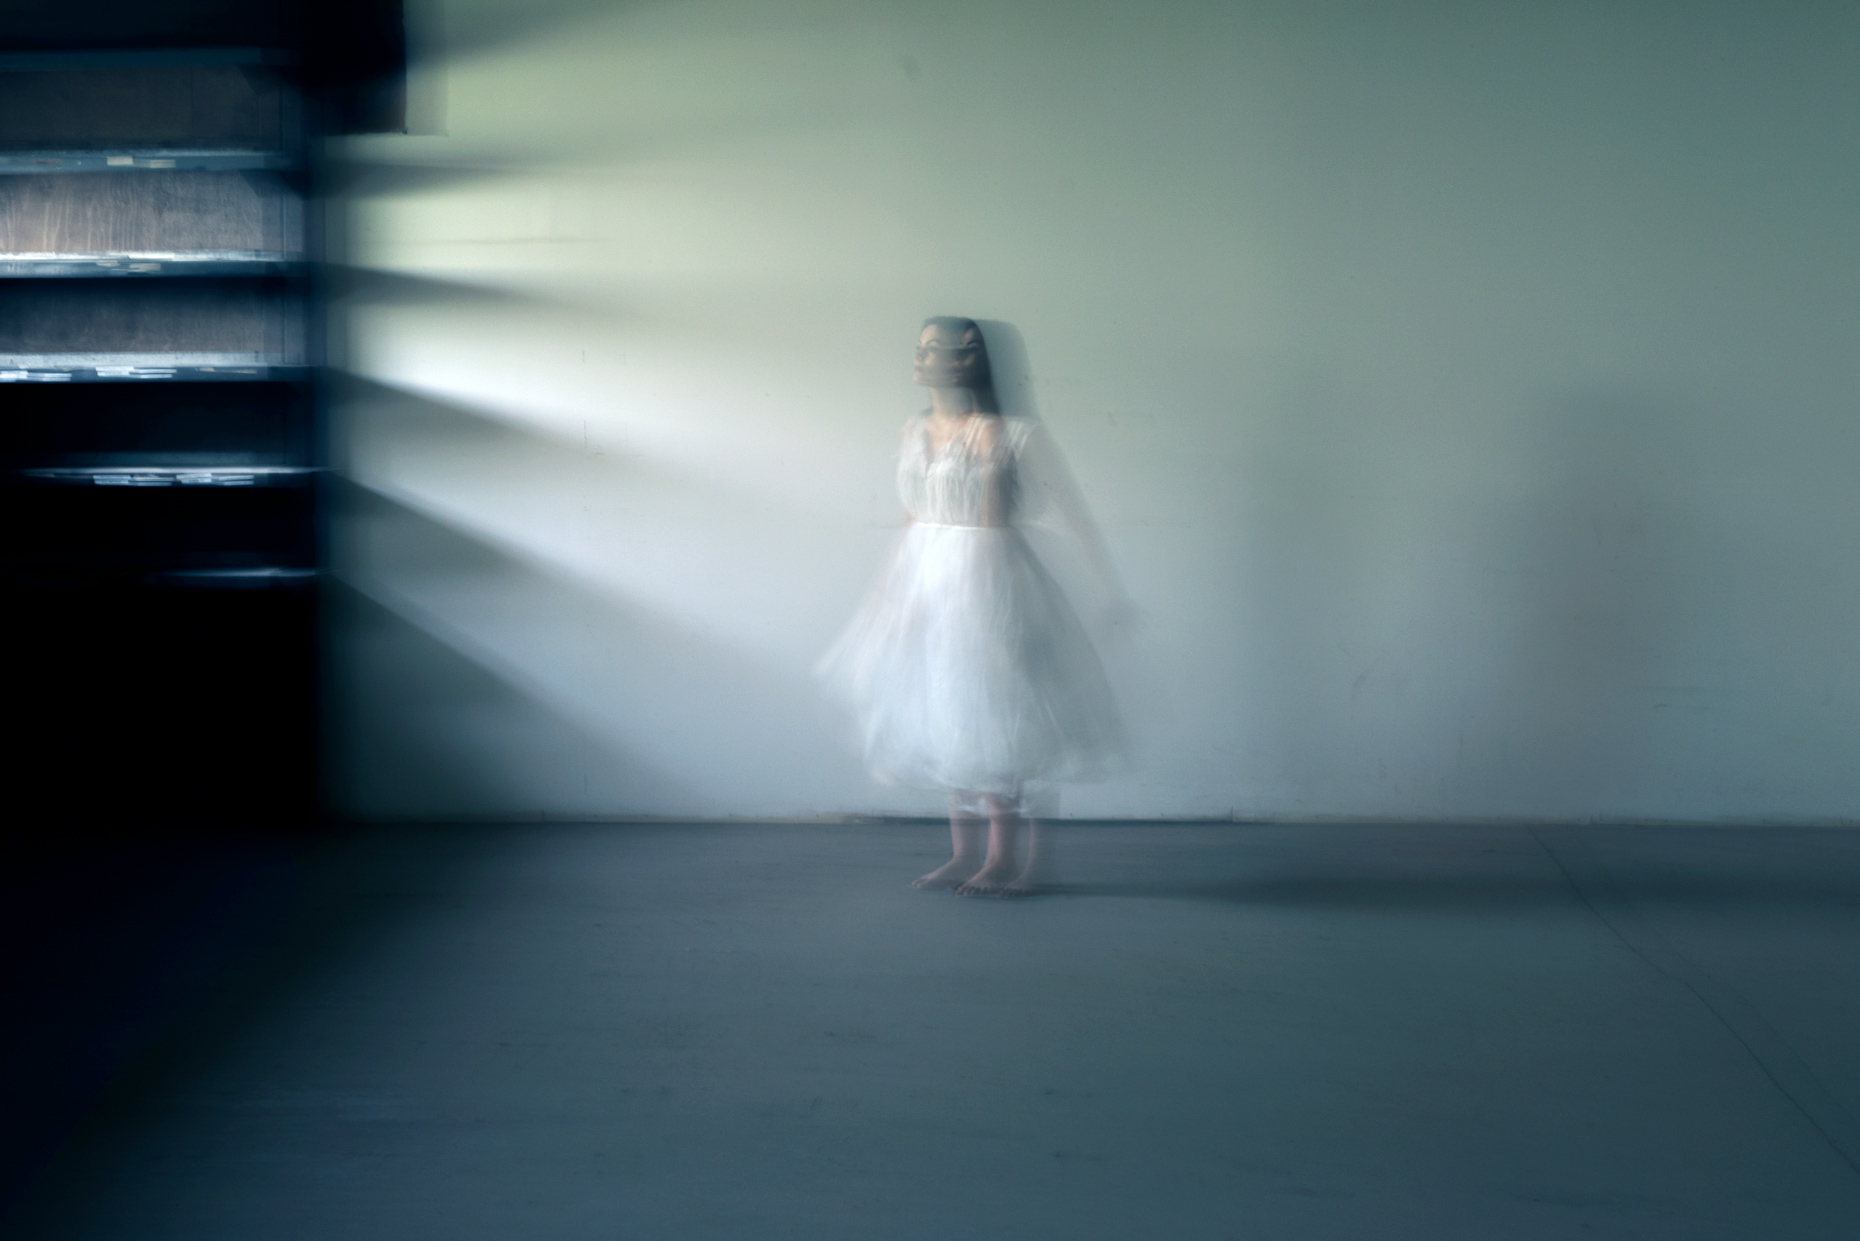 Photograph of a ghost woman in a room environmental portrait